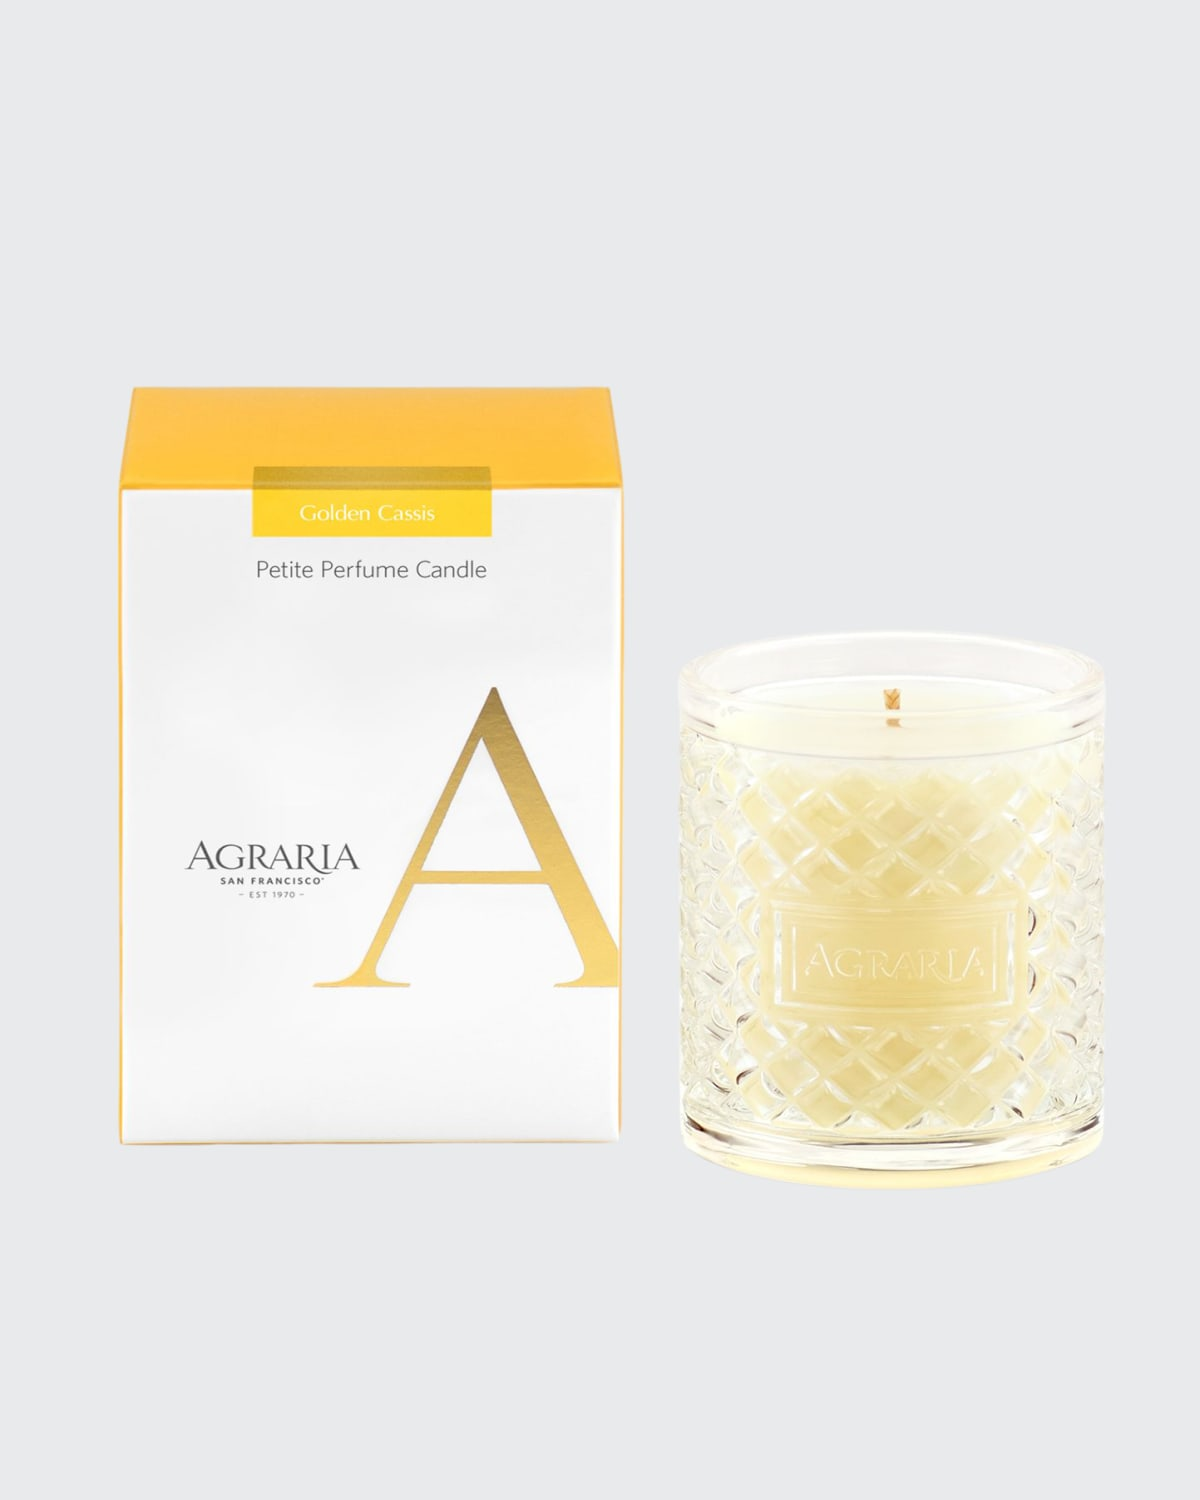 Golden Cassis Candle